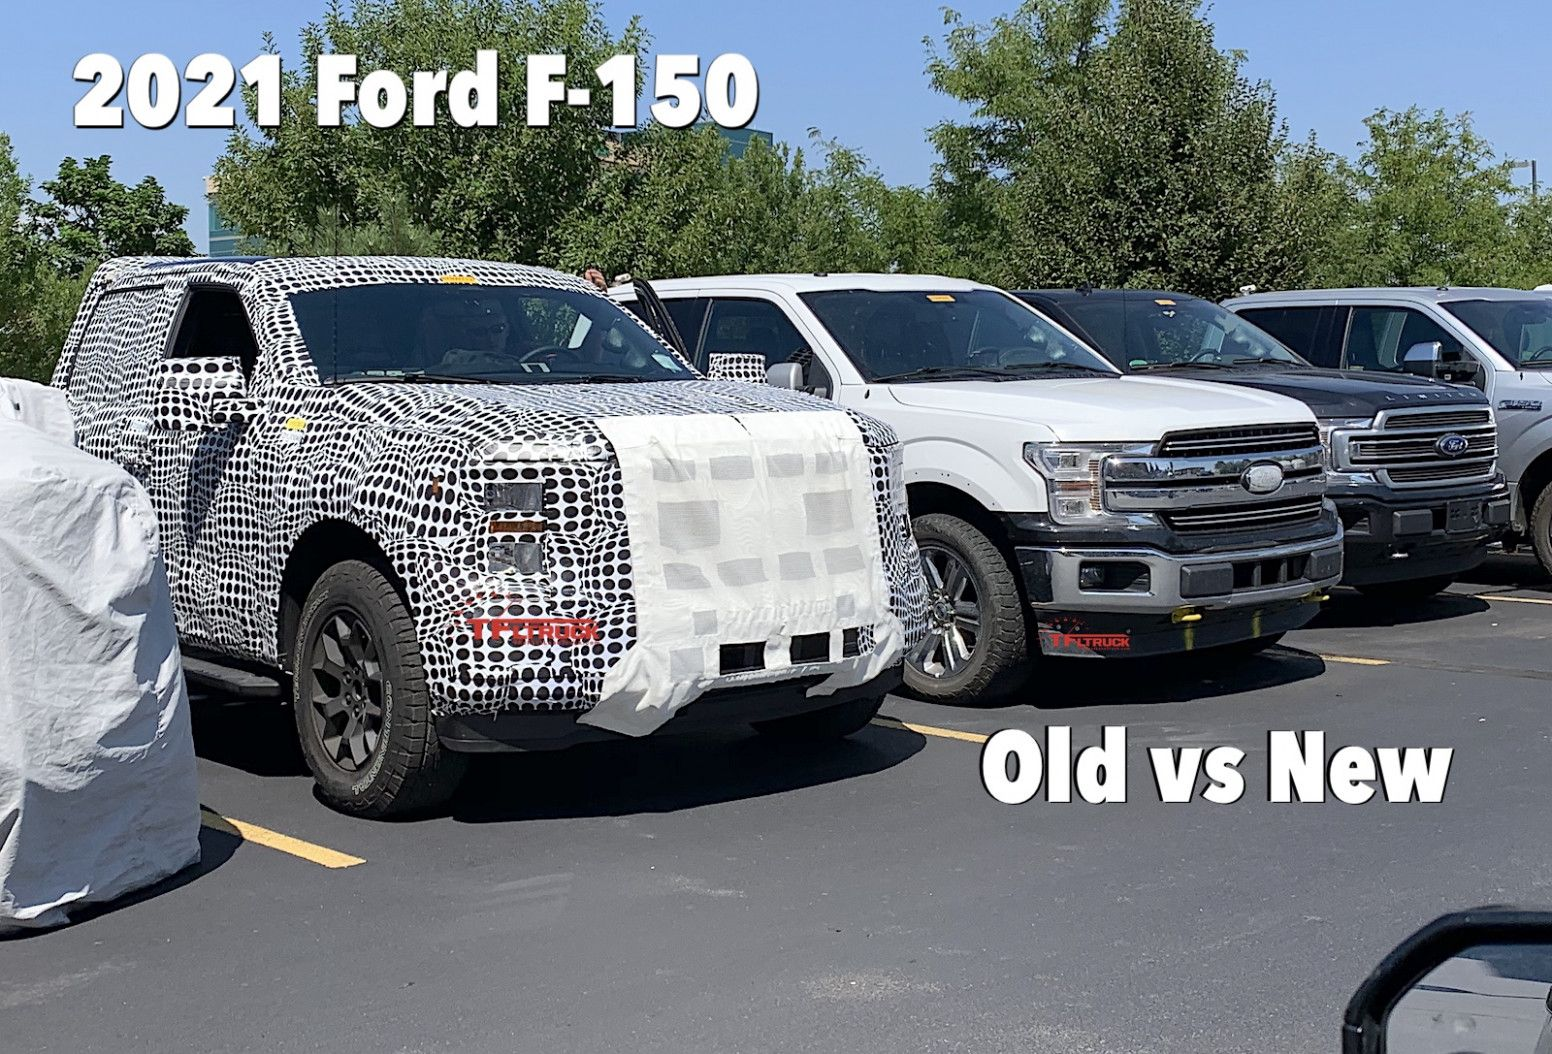 2021 Spy Photographs Ford F350 Diesel Evaluation 2021 Spy Shots